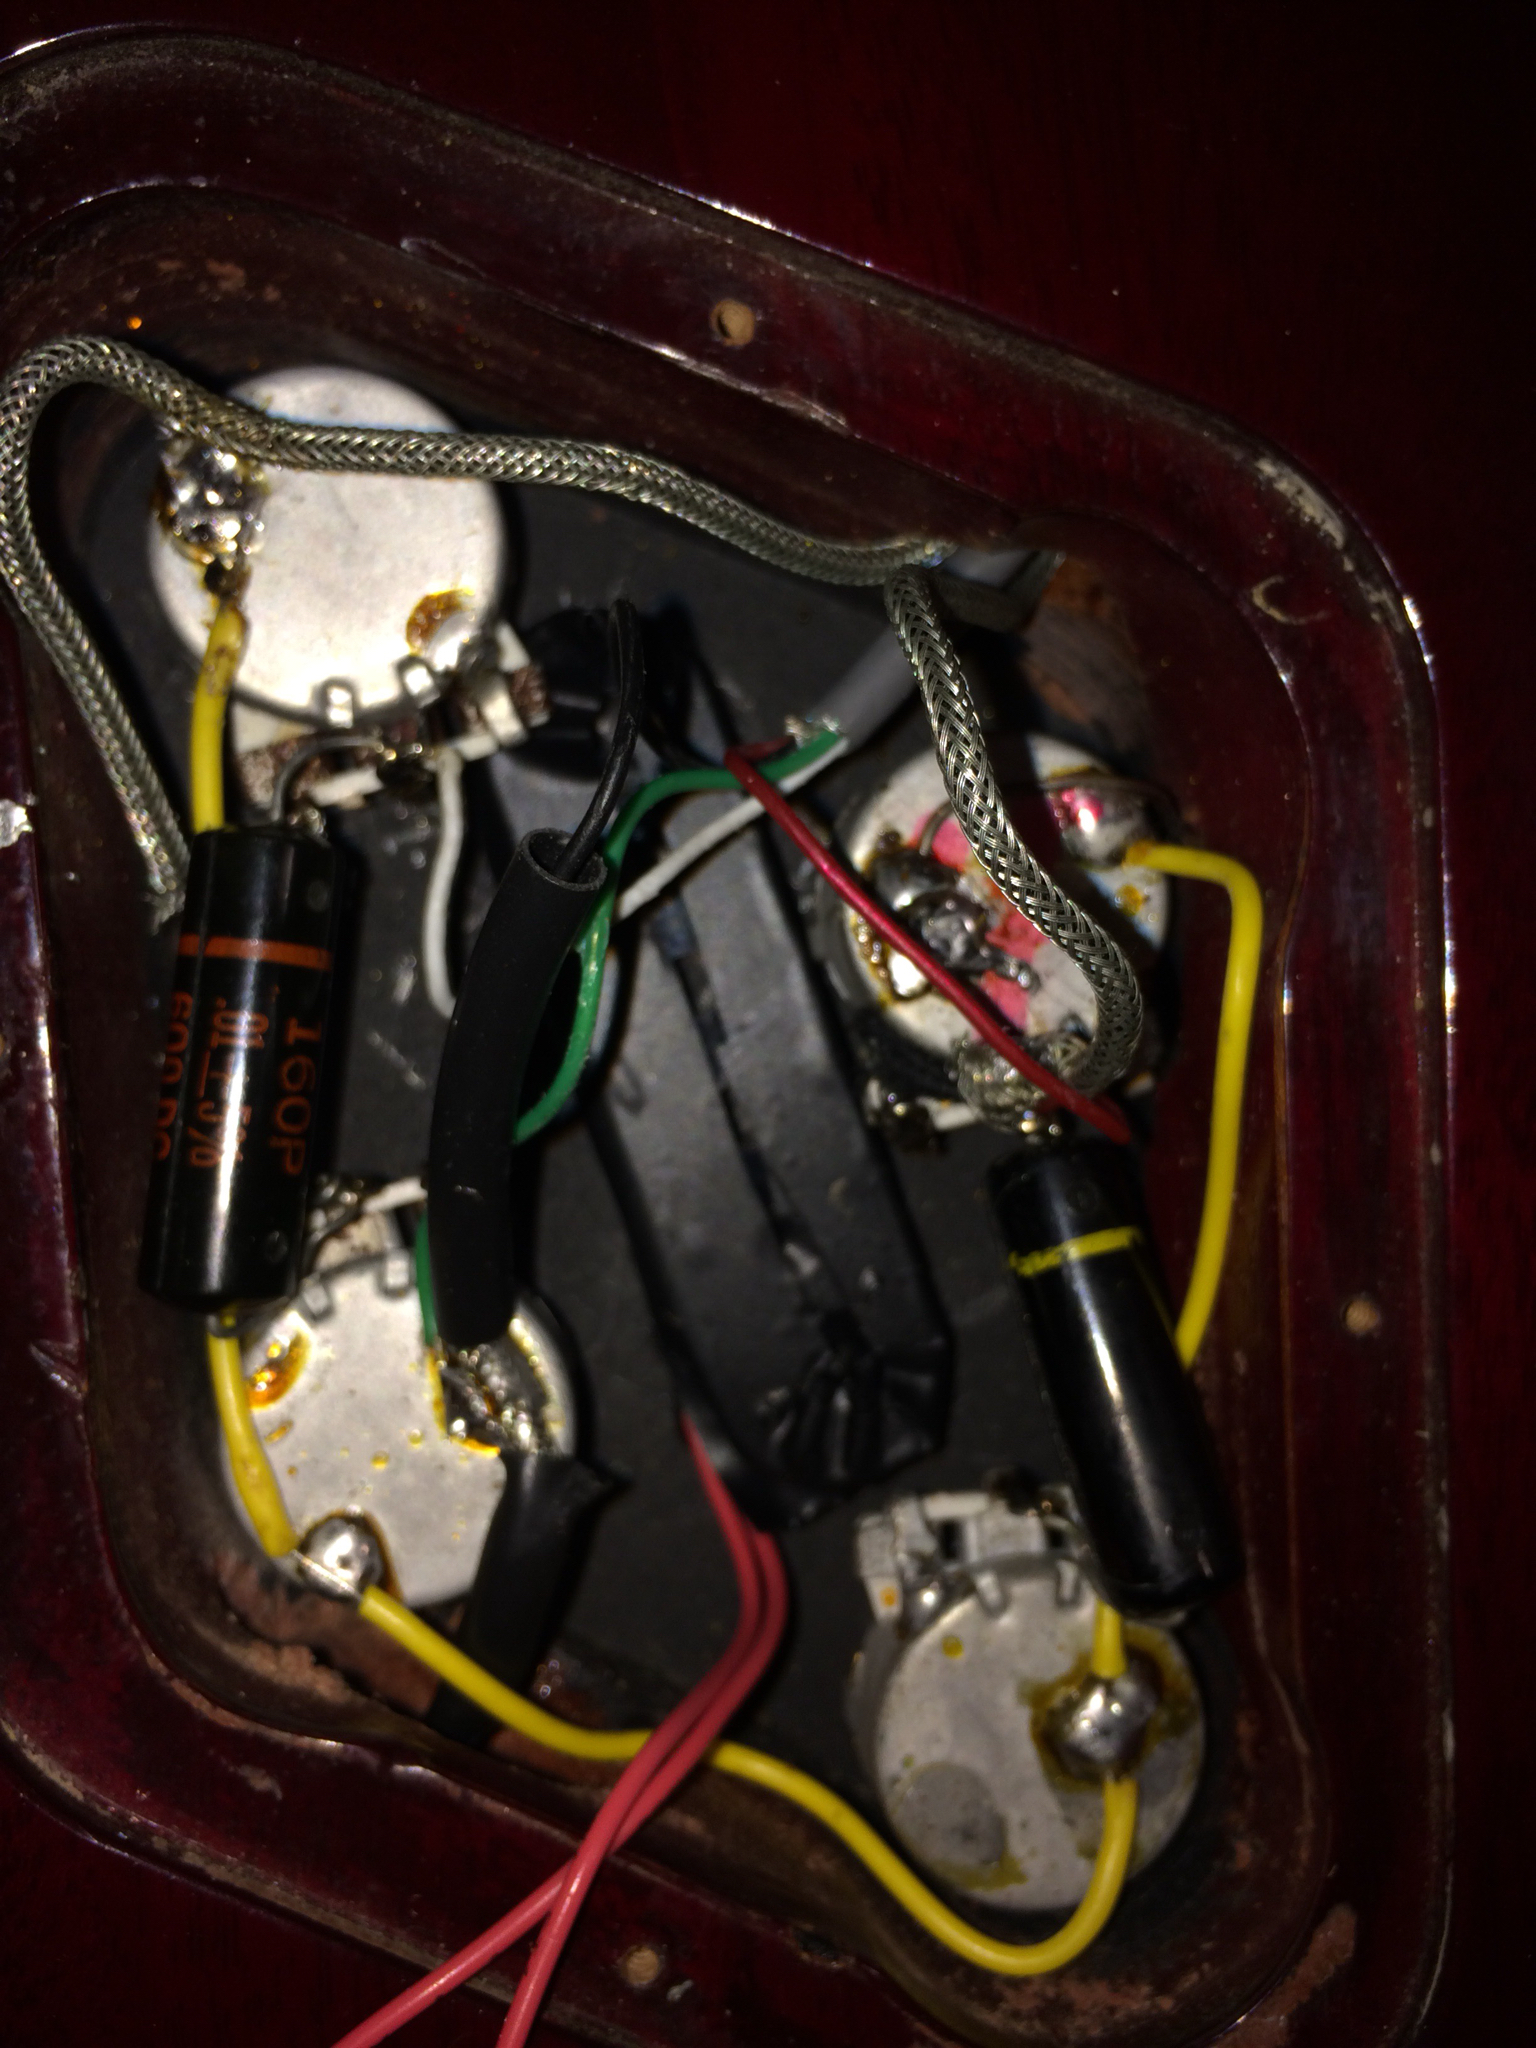 that's the other coil from the $20 epiphone bridge humbucker